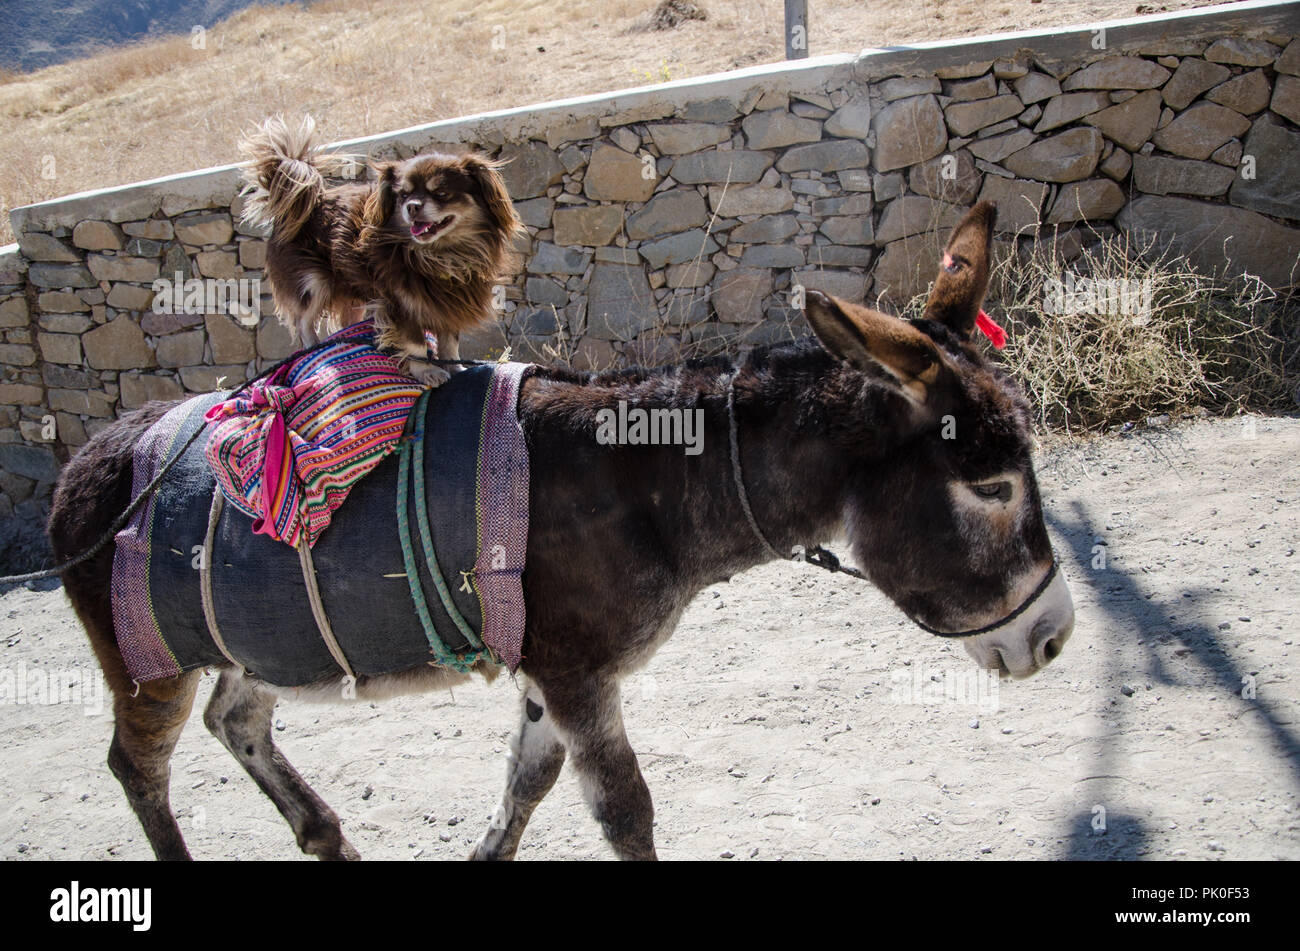 Happy dog above donkey next to the mountains of the city of San Pedro de Castas east of Lima - Peru - Stock Image